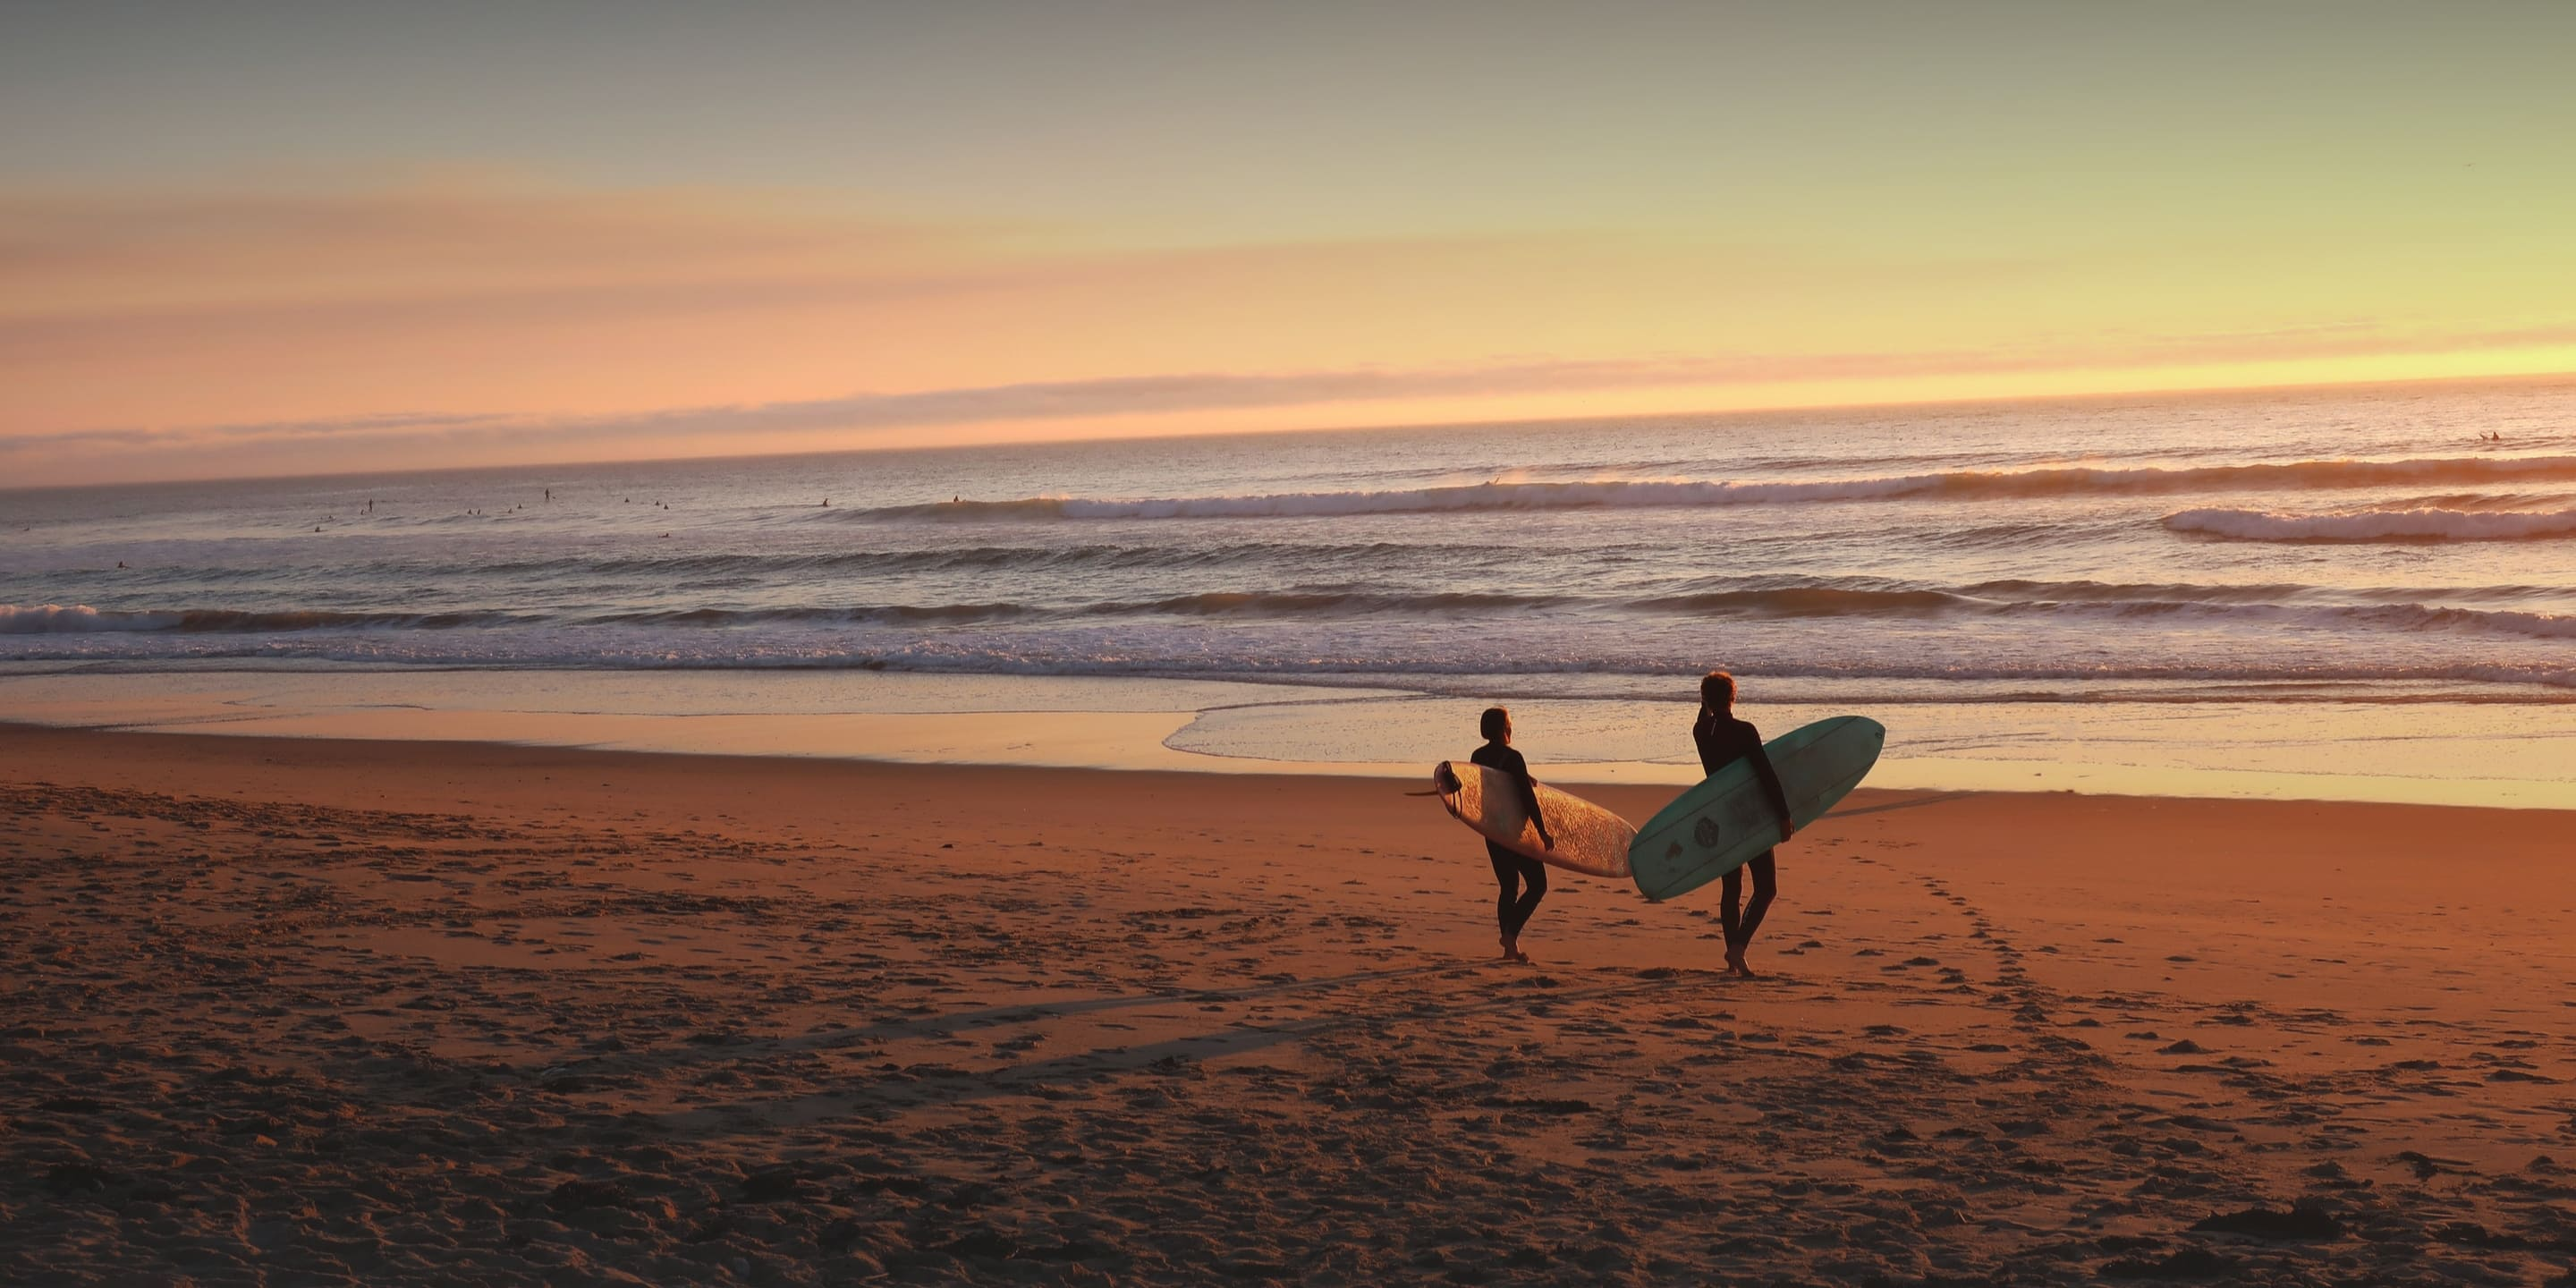 learn english in australia - and enjoy surfing on a beautiful beach